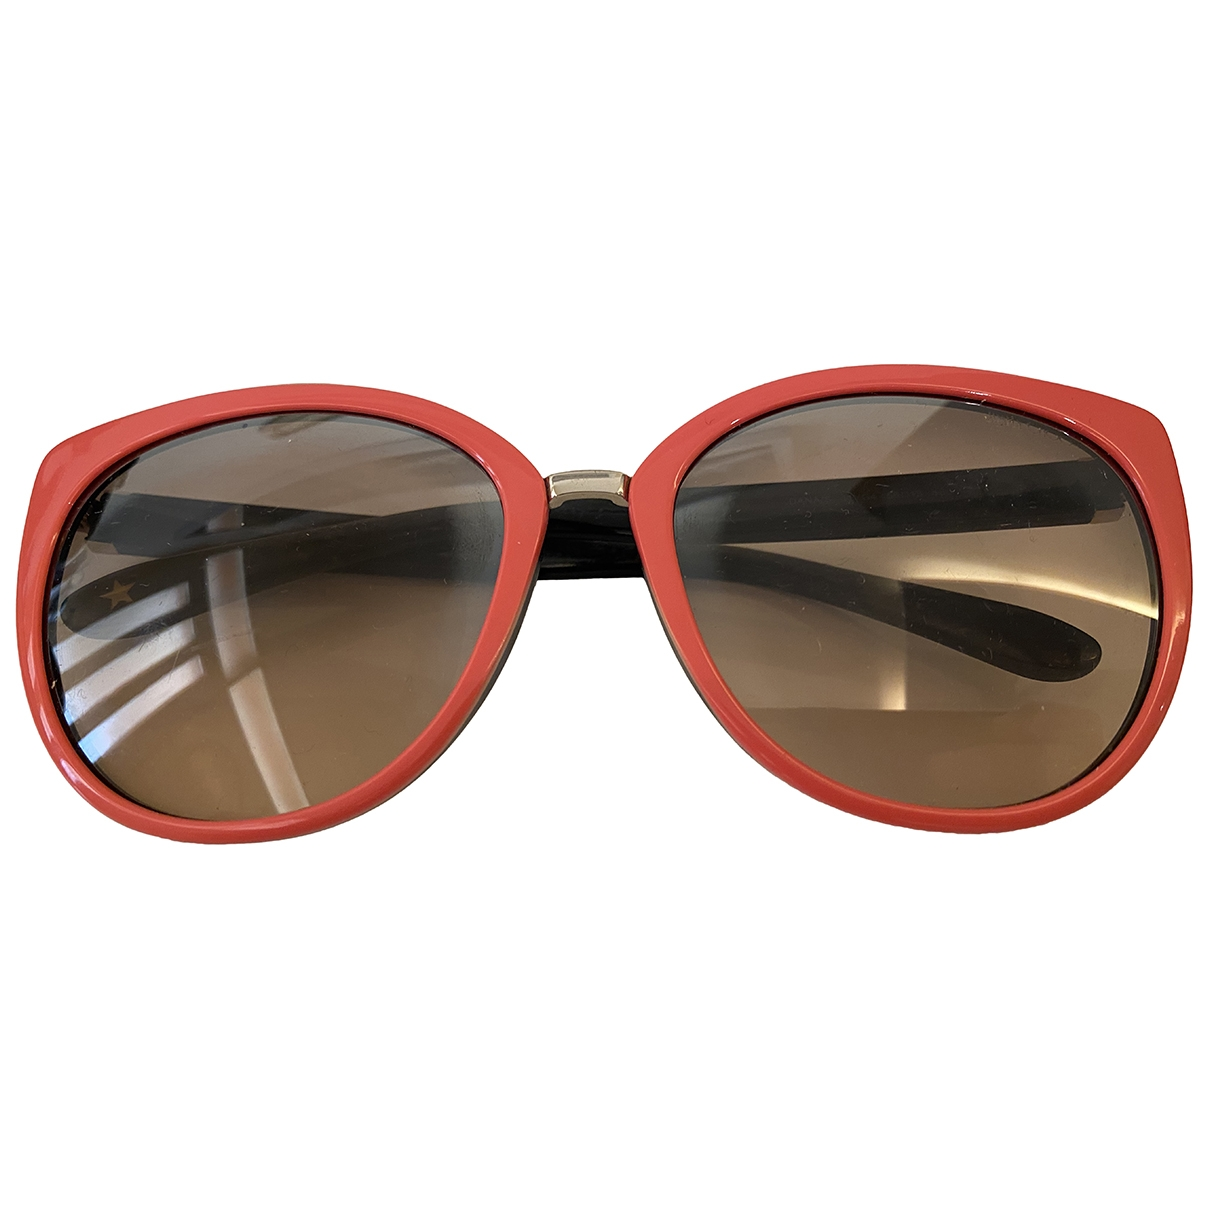 Jimmy Choo \N Orange Sunglasses for Women \N